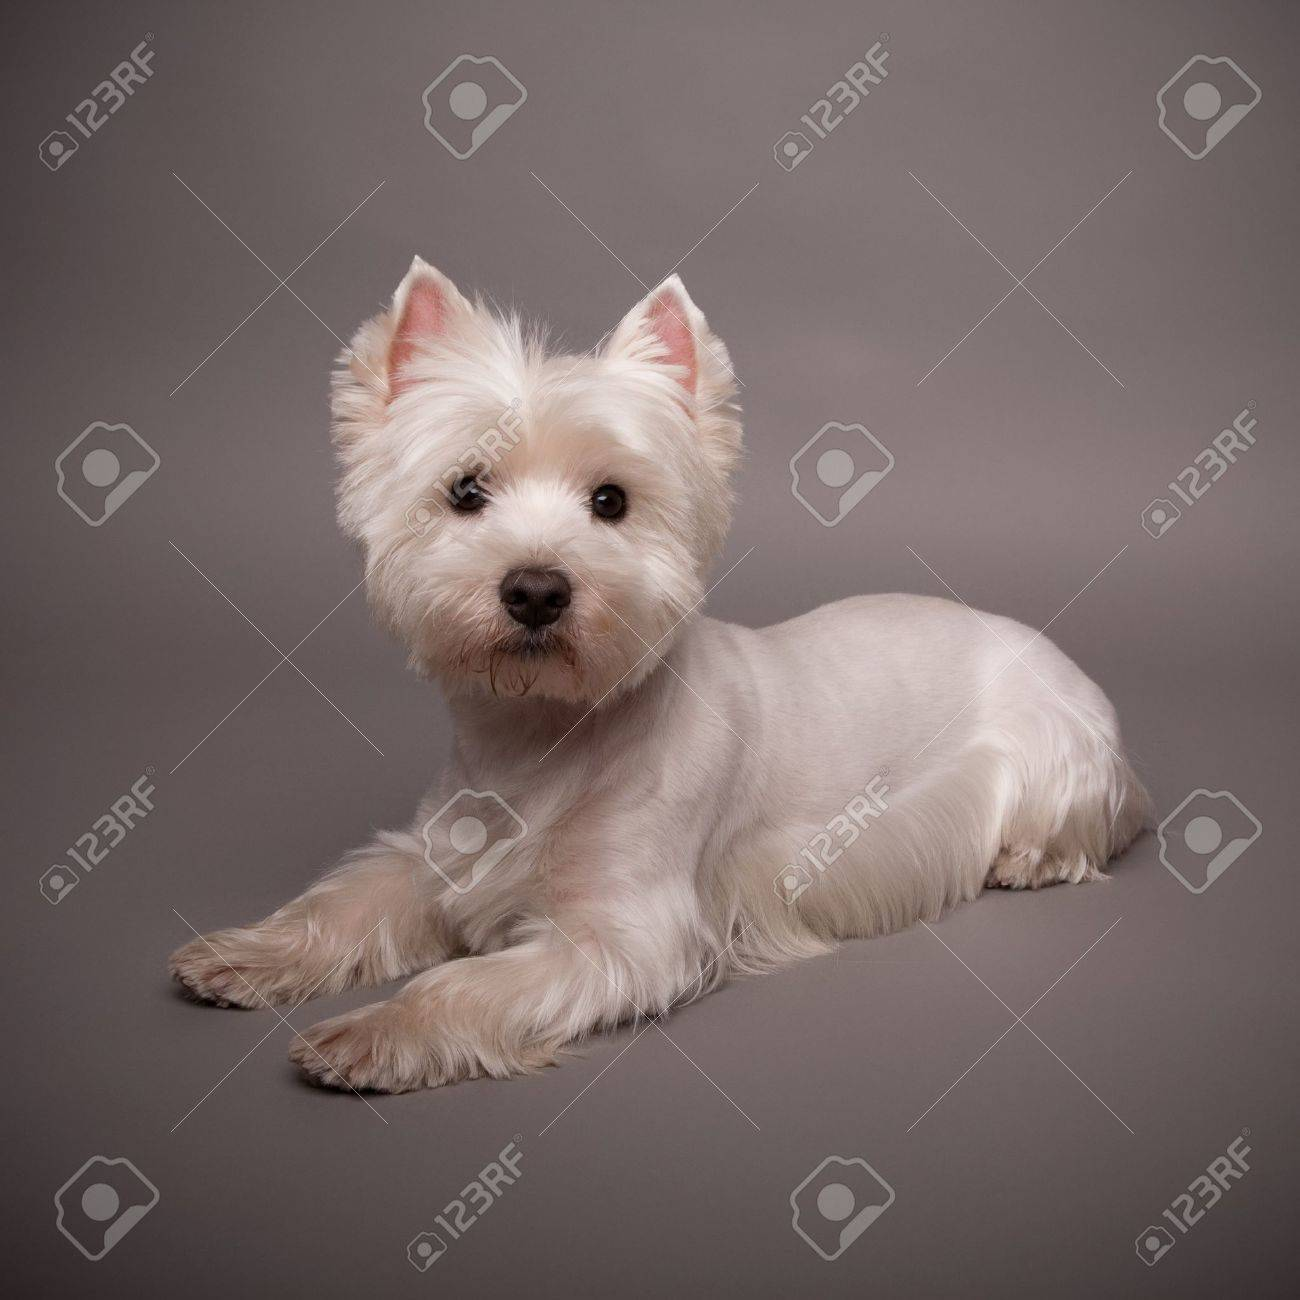 Adorable West Highland Terrier (Westie) on a gray background Stock Photo - 13348074